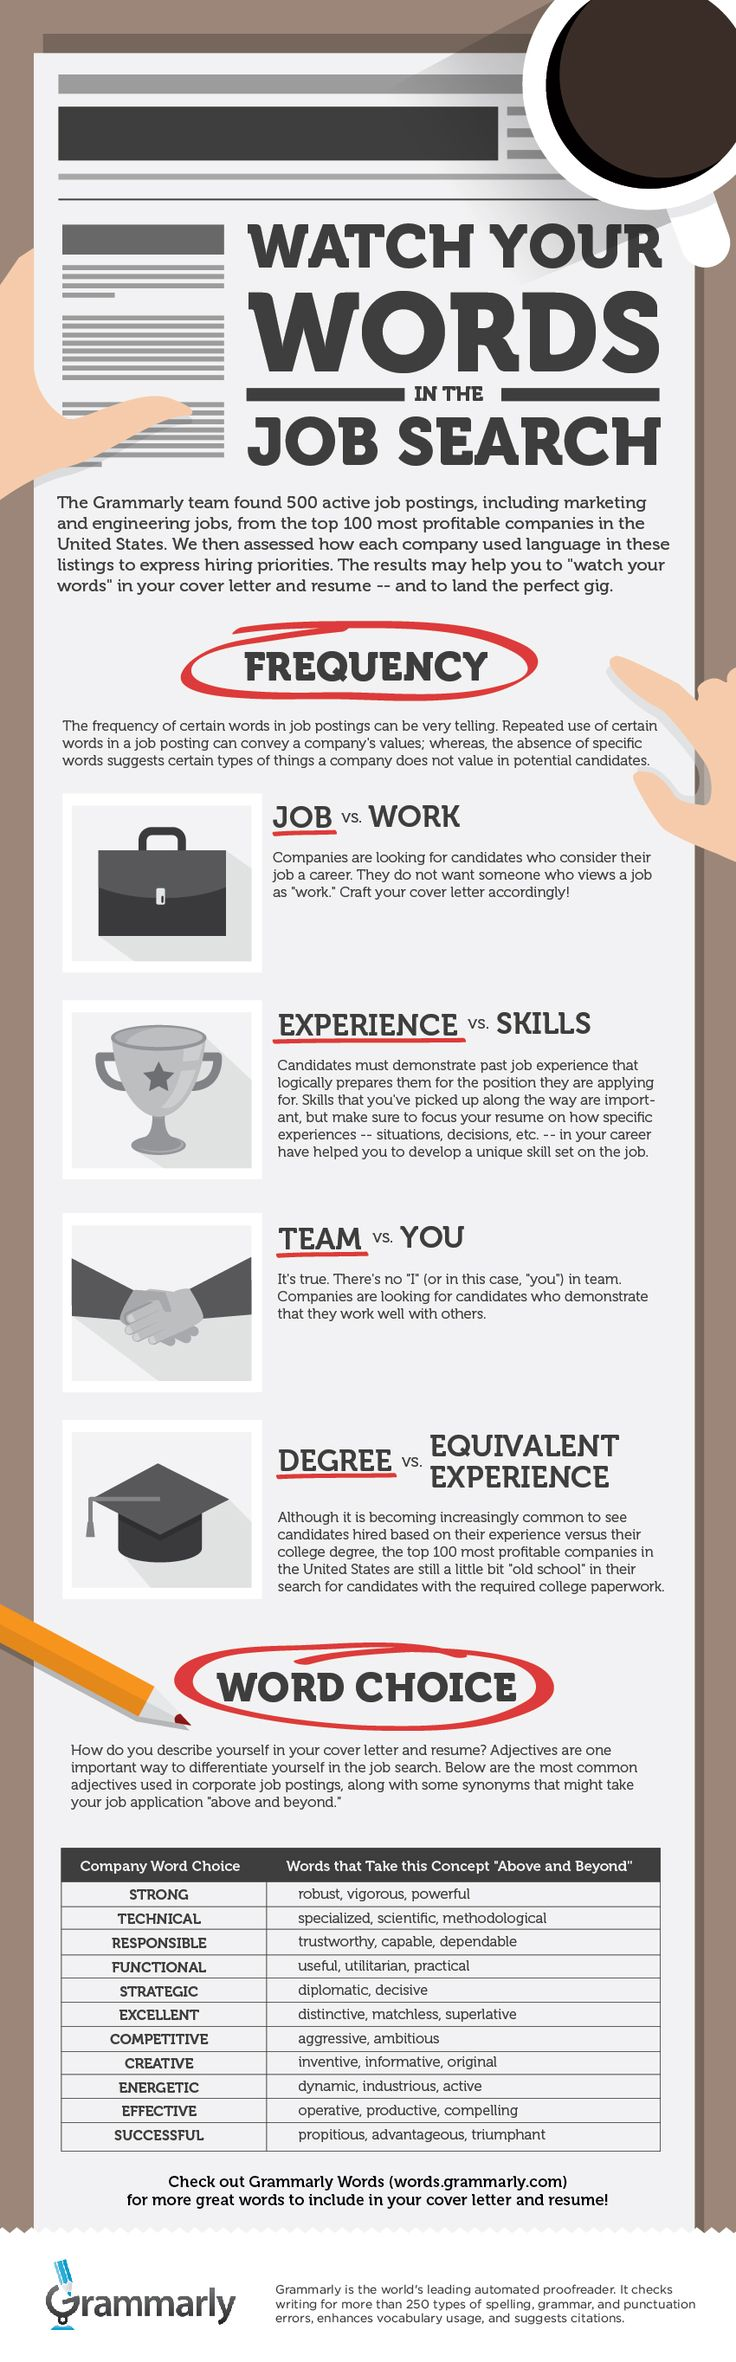 free resume templates resume examples samples cv resume format how to write resume for high school